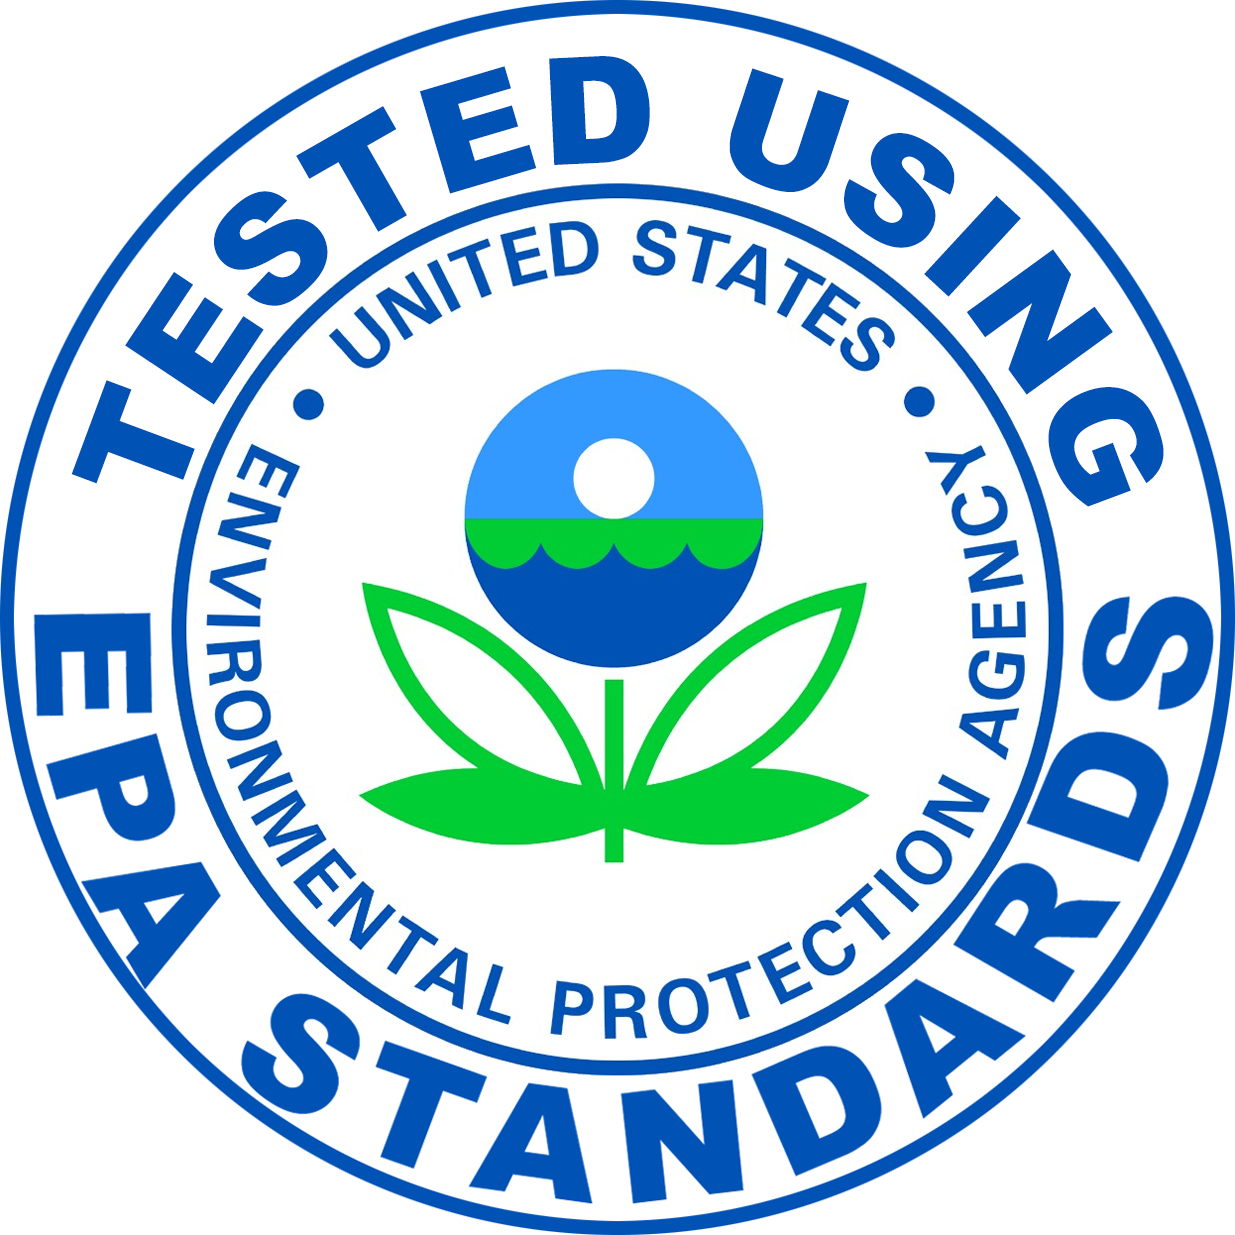 No NOx Box® tested using EPA standards